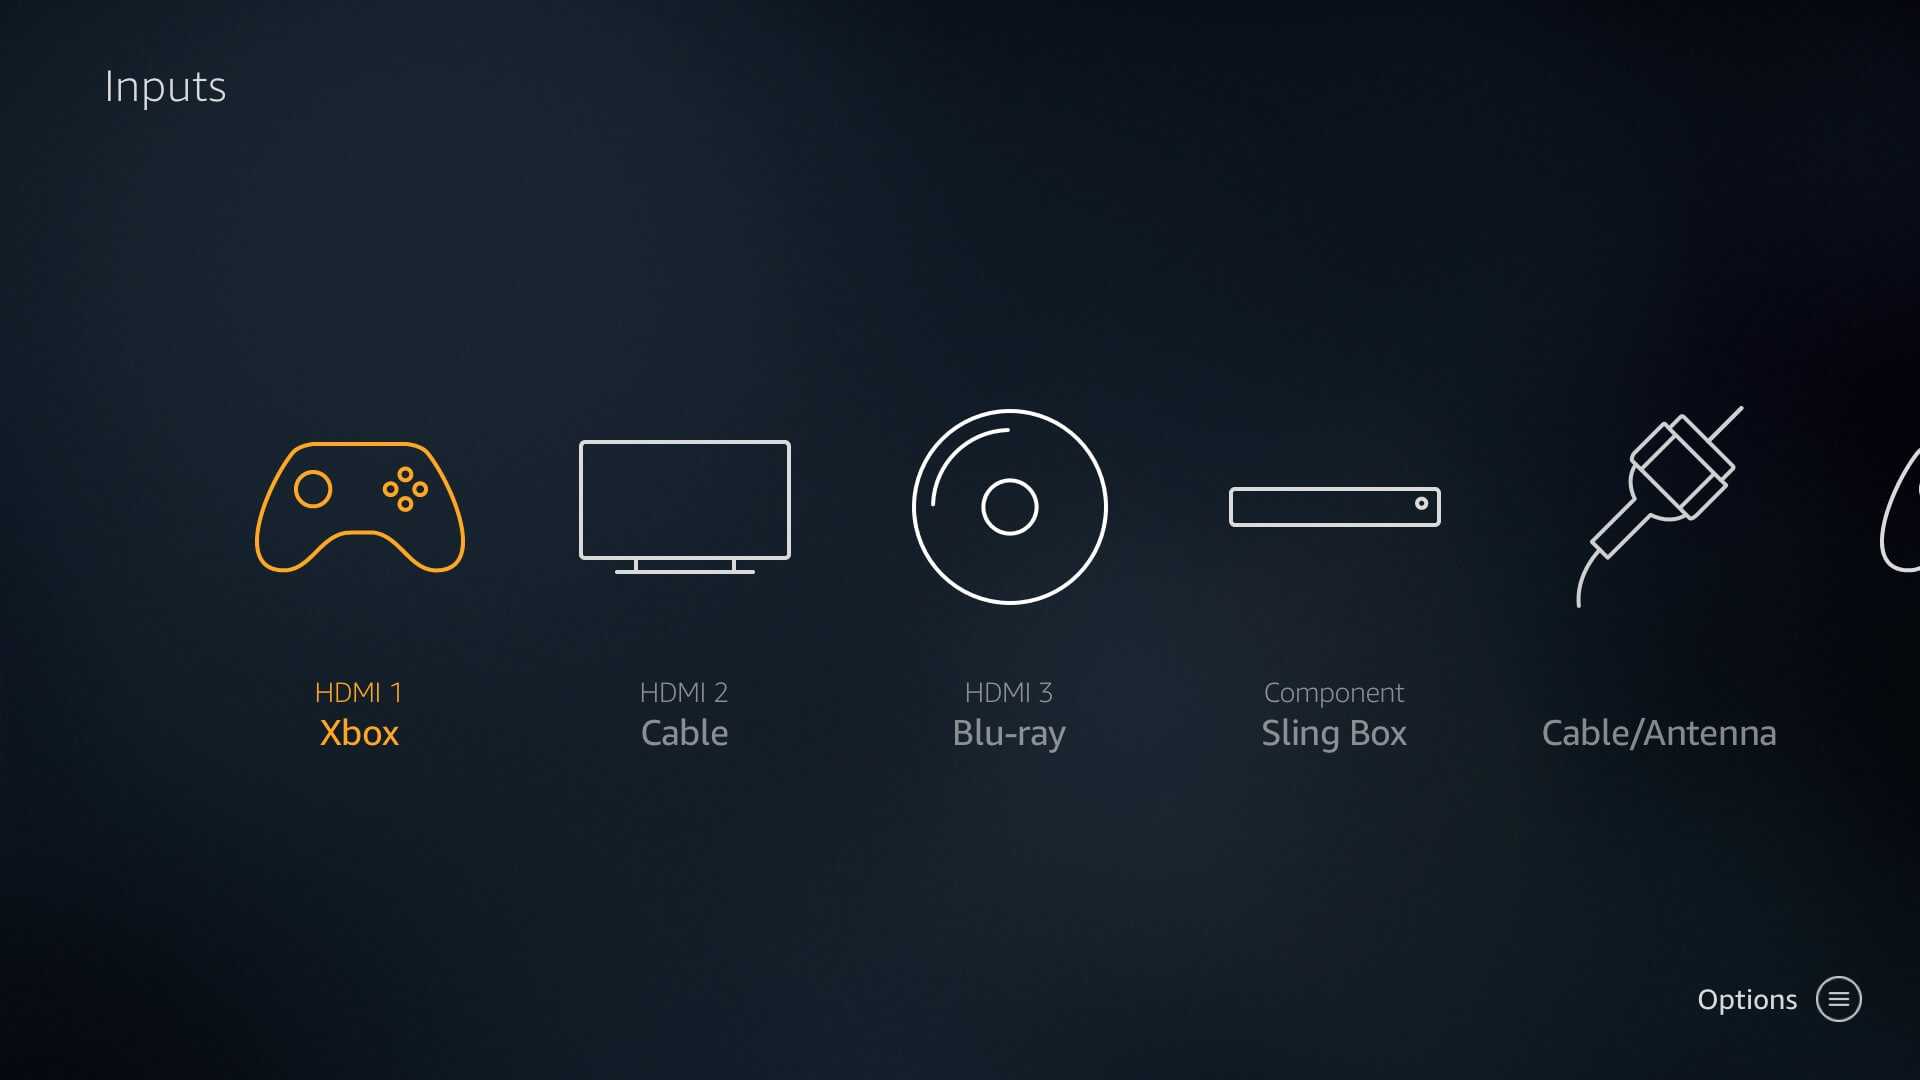 Inputs supported on the Westinghouse 4k UHD Smart TV - Amazon Fire TV edition.